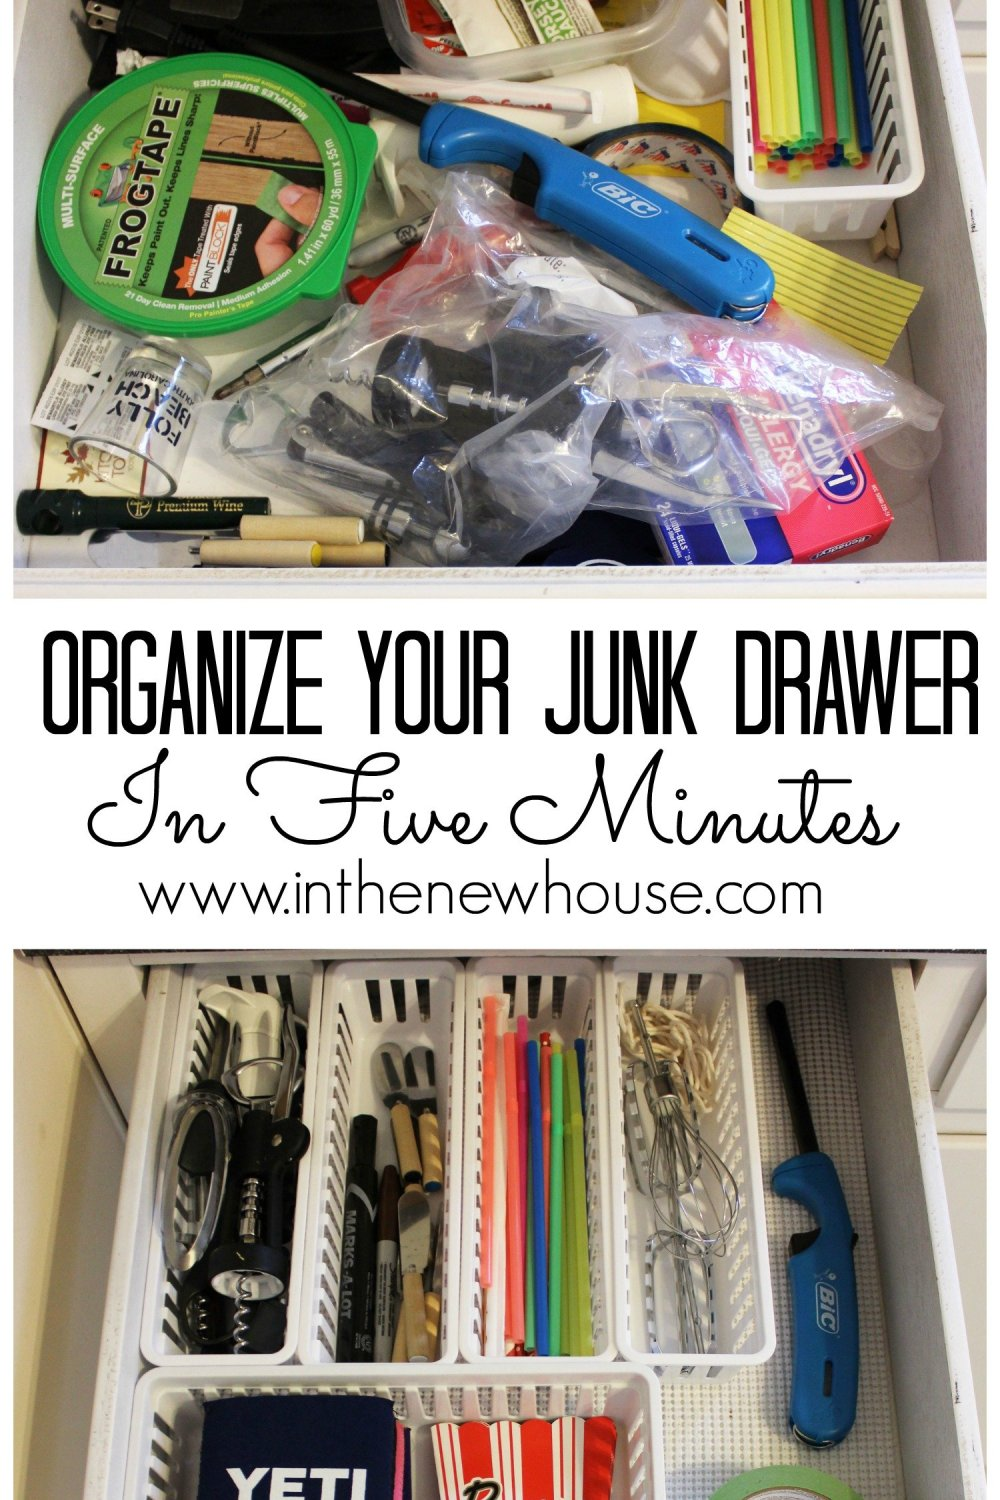 It All Started With The Junk Drawer